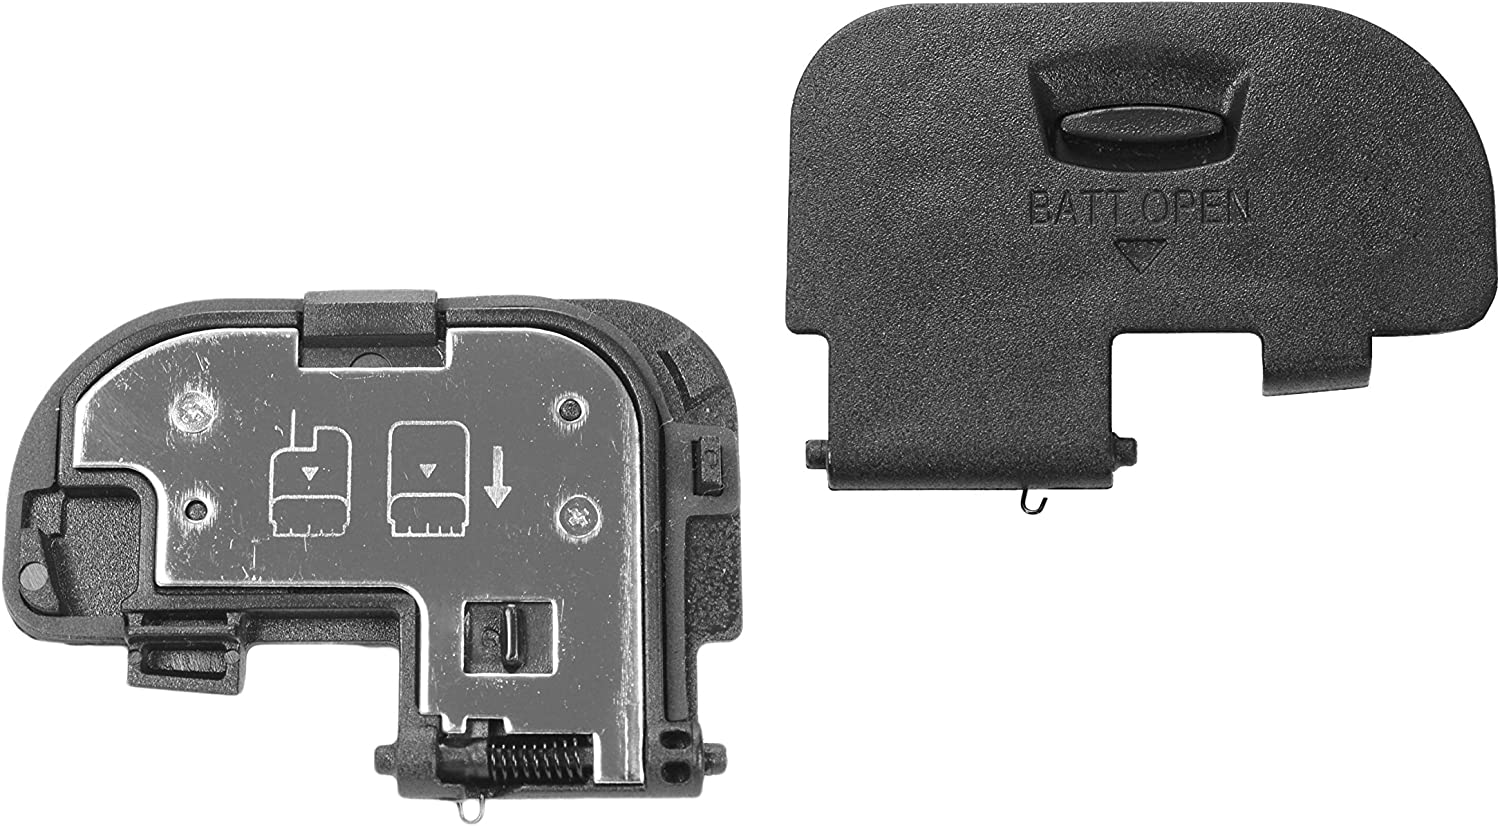 Canon EOS 6D Digital Camera Right Side Strap Holder Replacement Repair Part